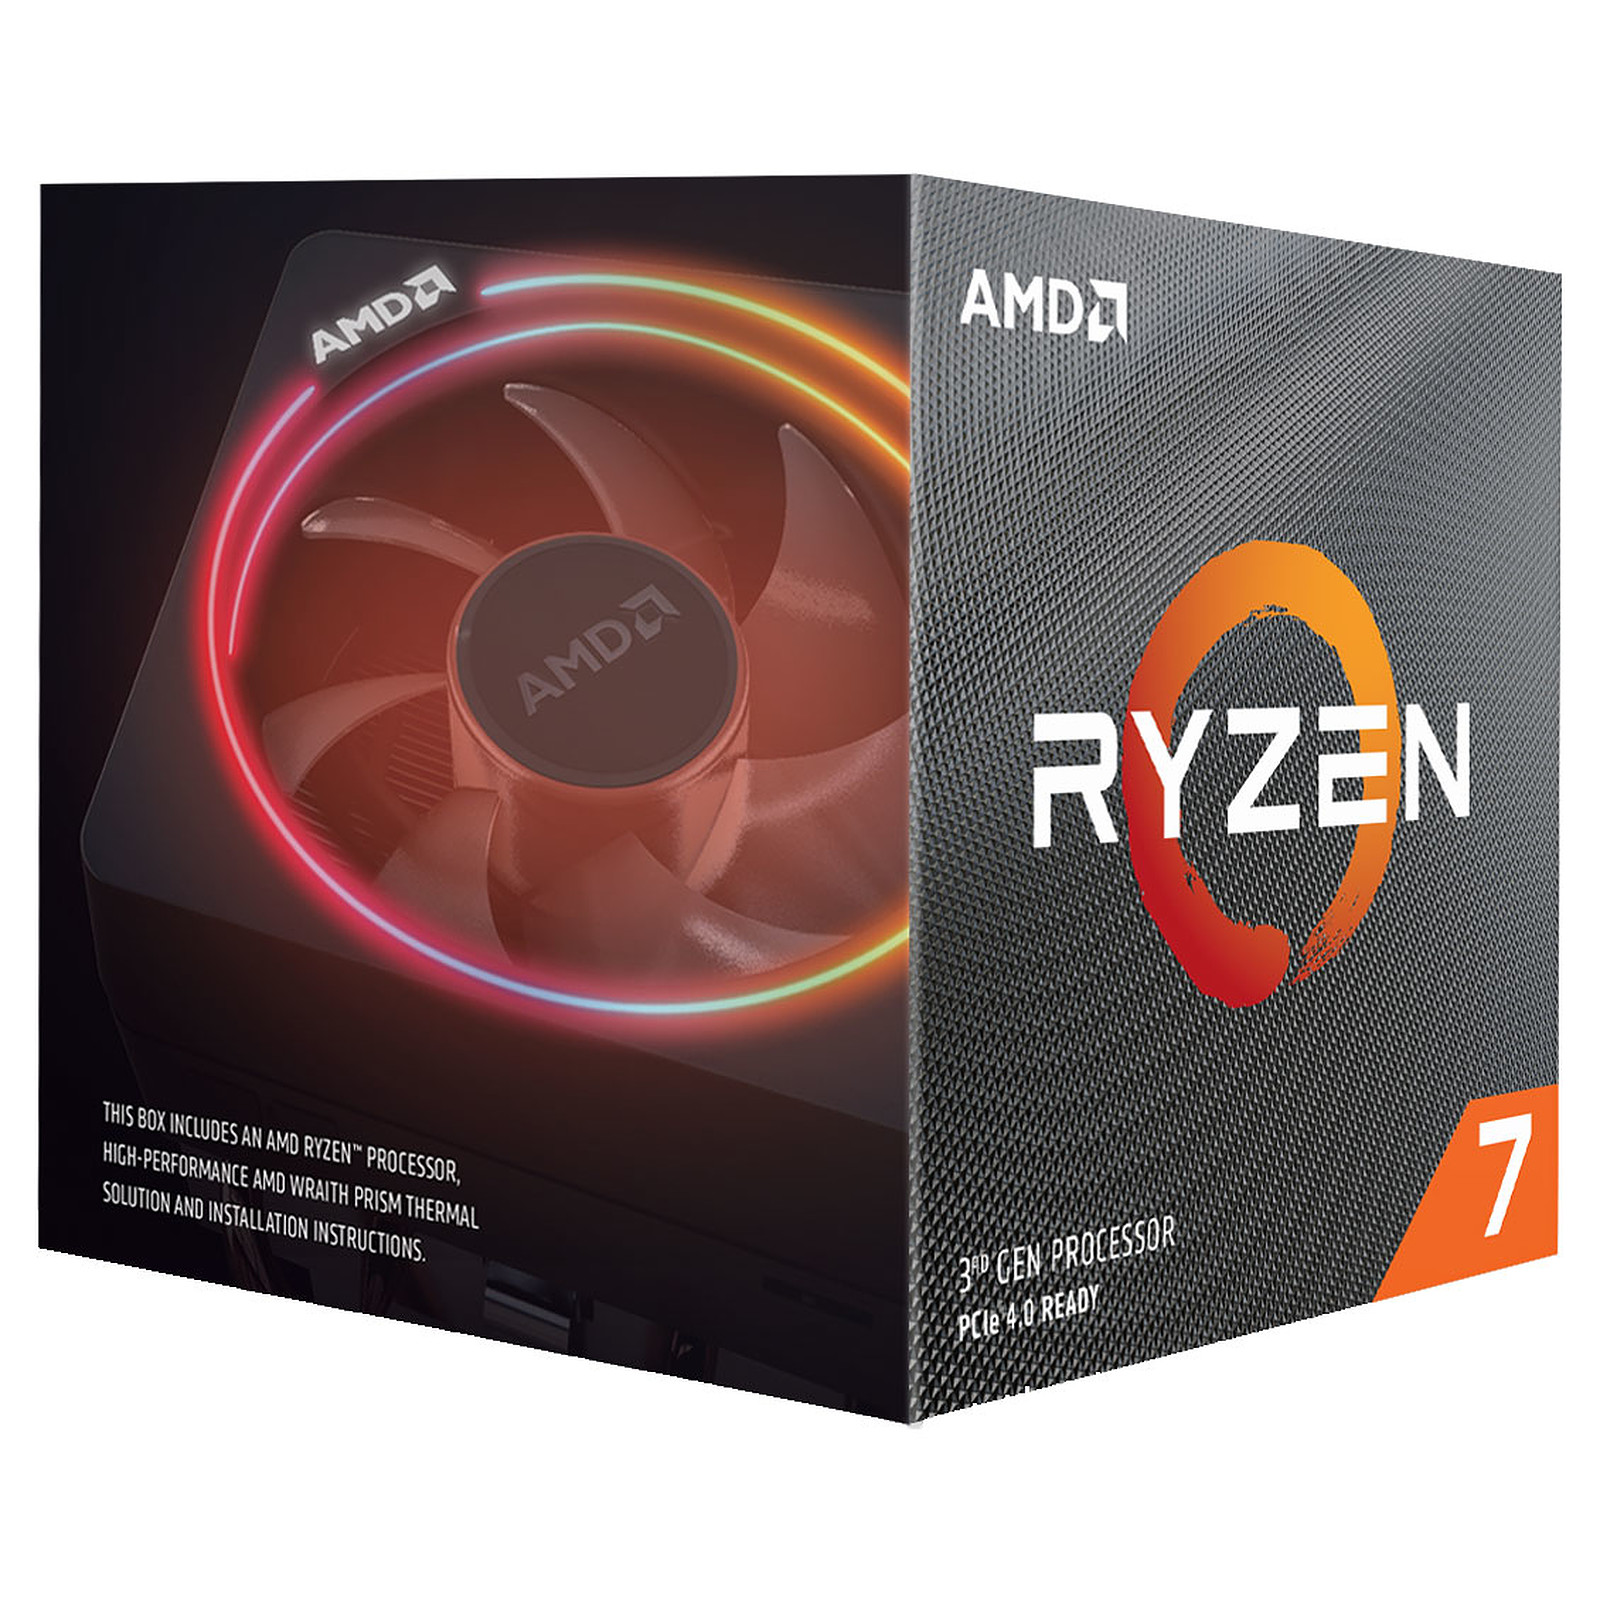 Processeur AMD 8 Core/16 Threads Socket AM4 Ryzen 7 3700X 32 Mo (Boîte), informatique ile de la Réunion, informatique-reunion.com